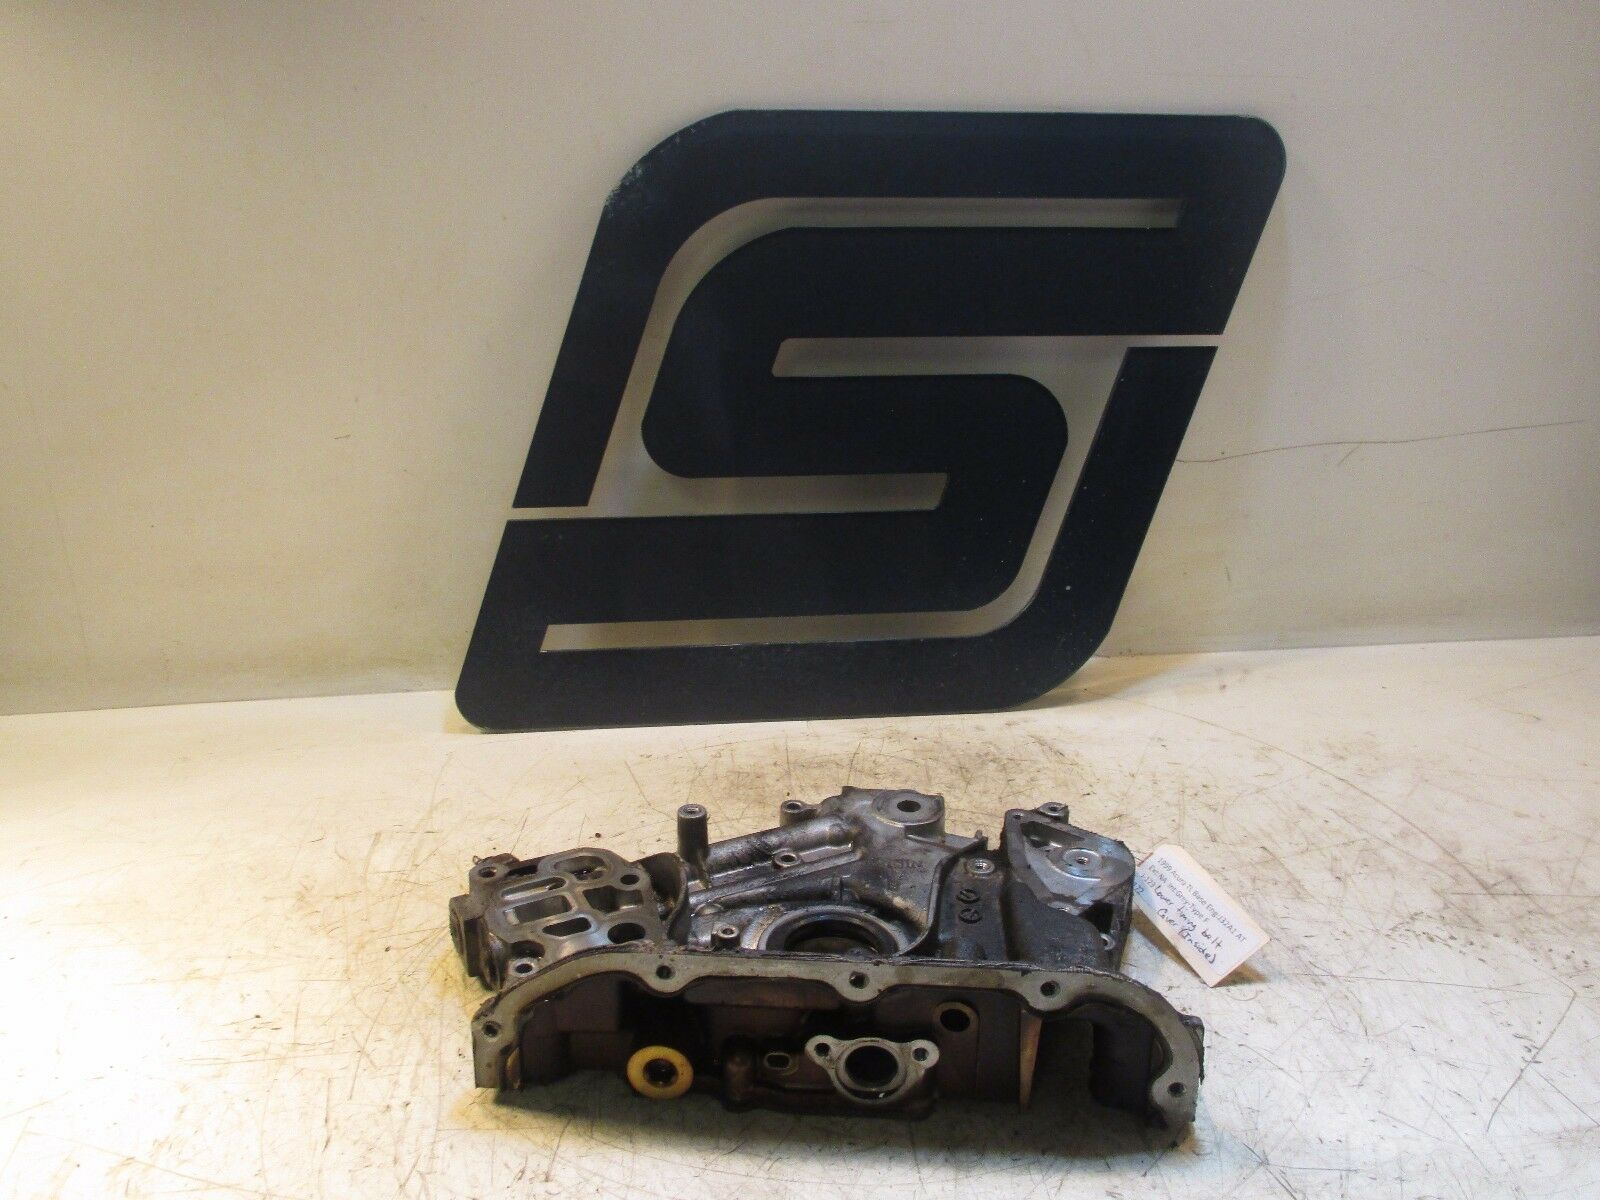 Used 1999 Acura TL Engines And Components For Sale